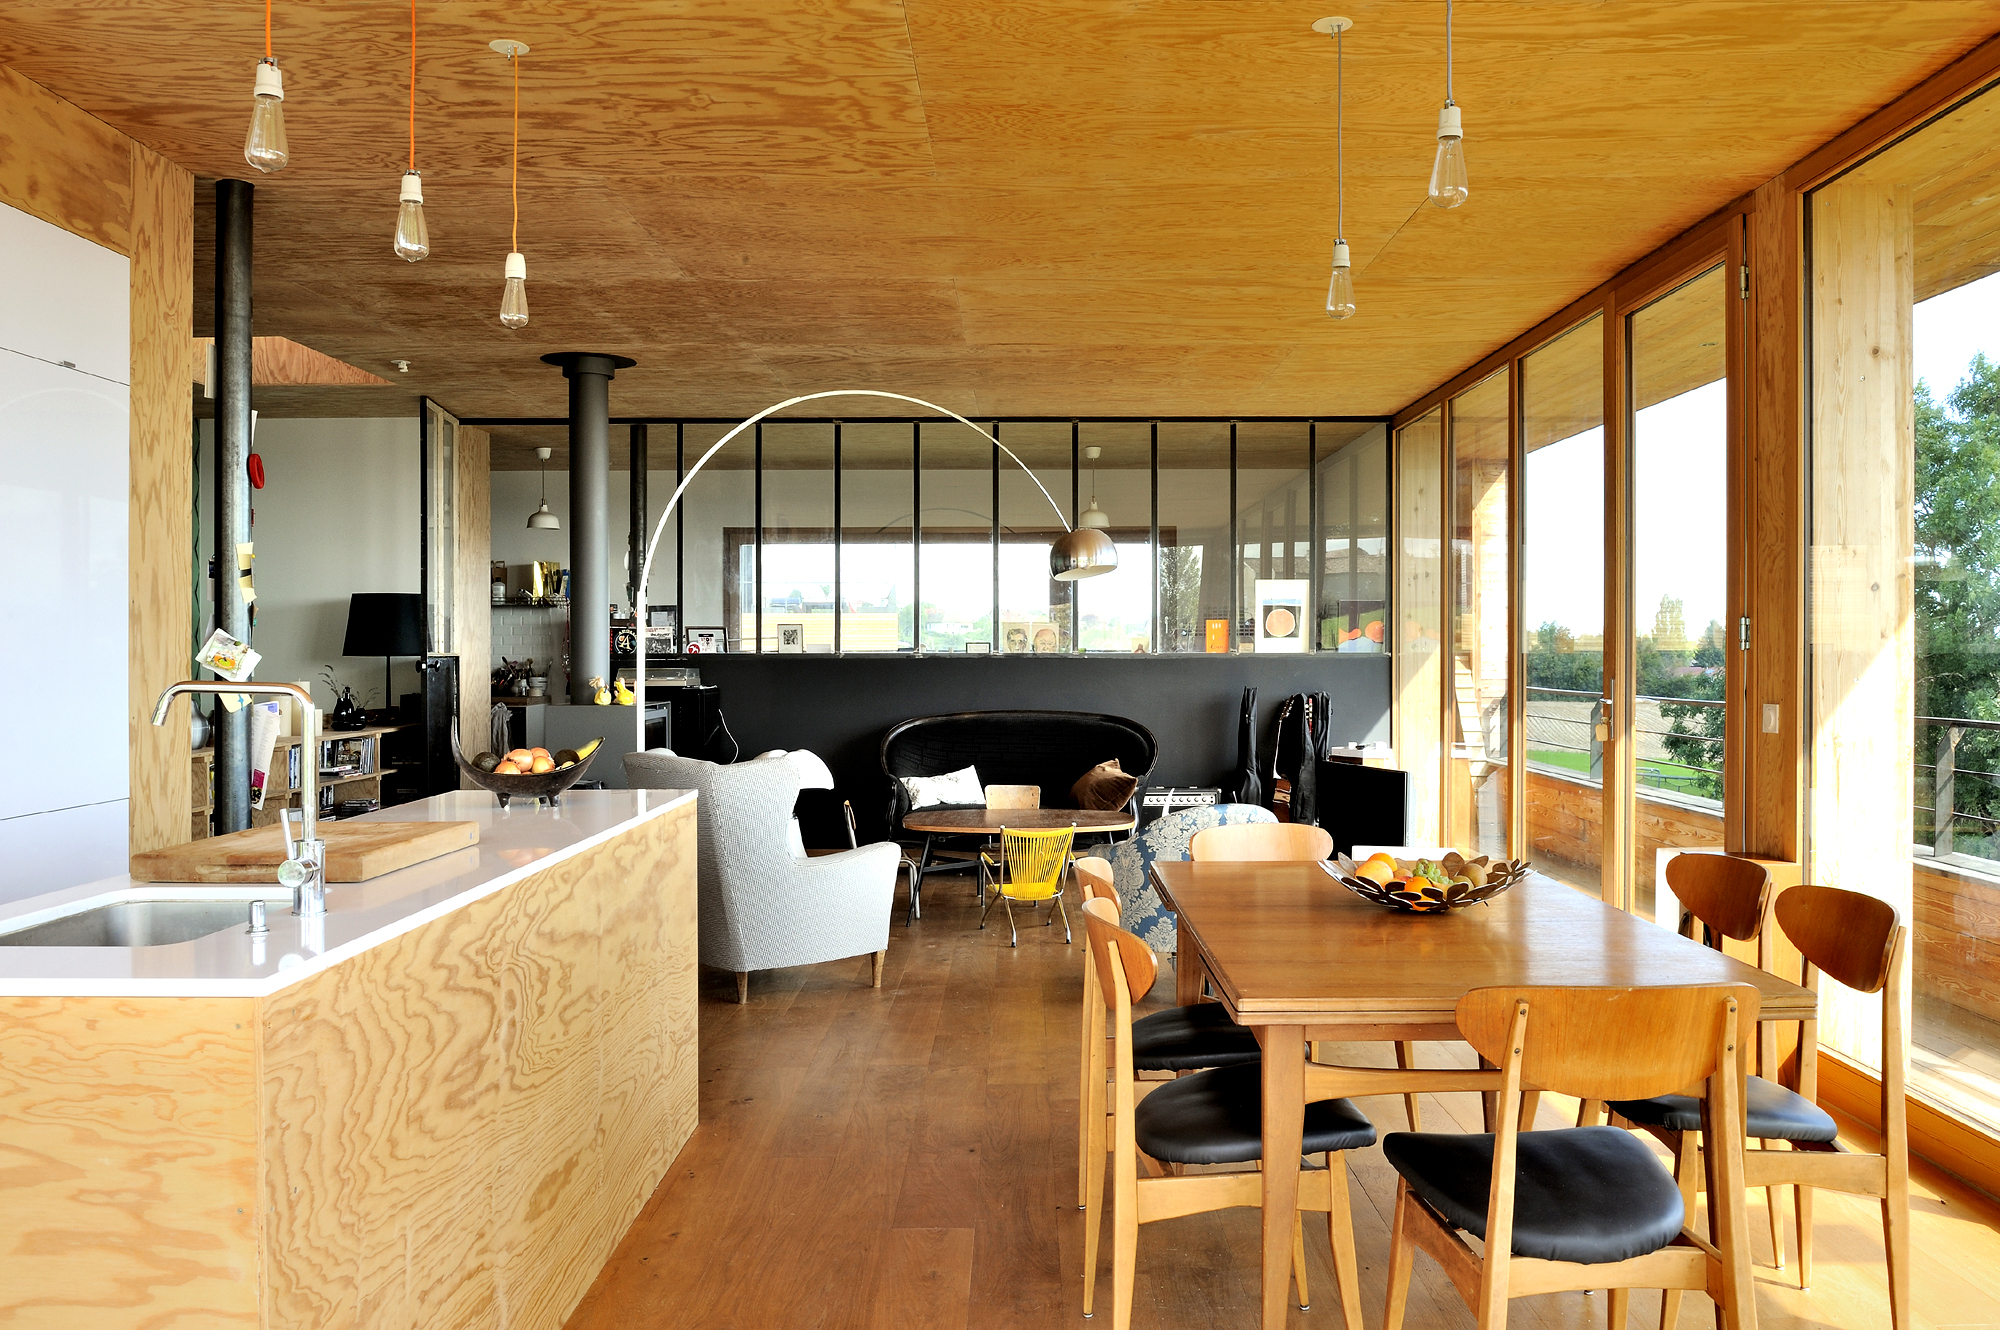 Amenagement Interieur Maison En Bois : Maison contemporaine en bois ...